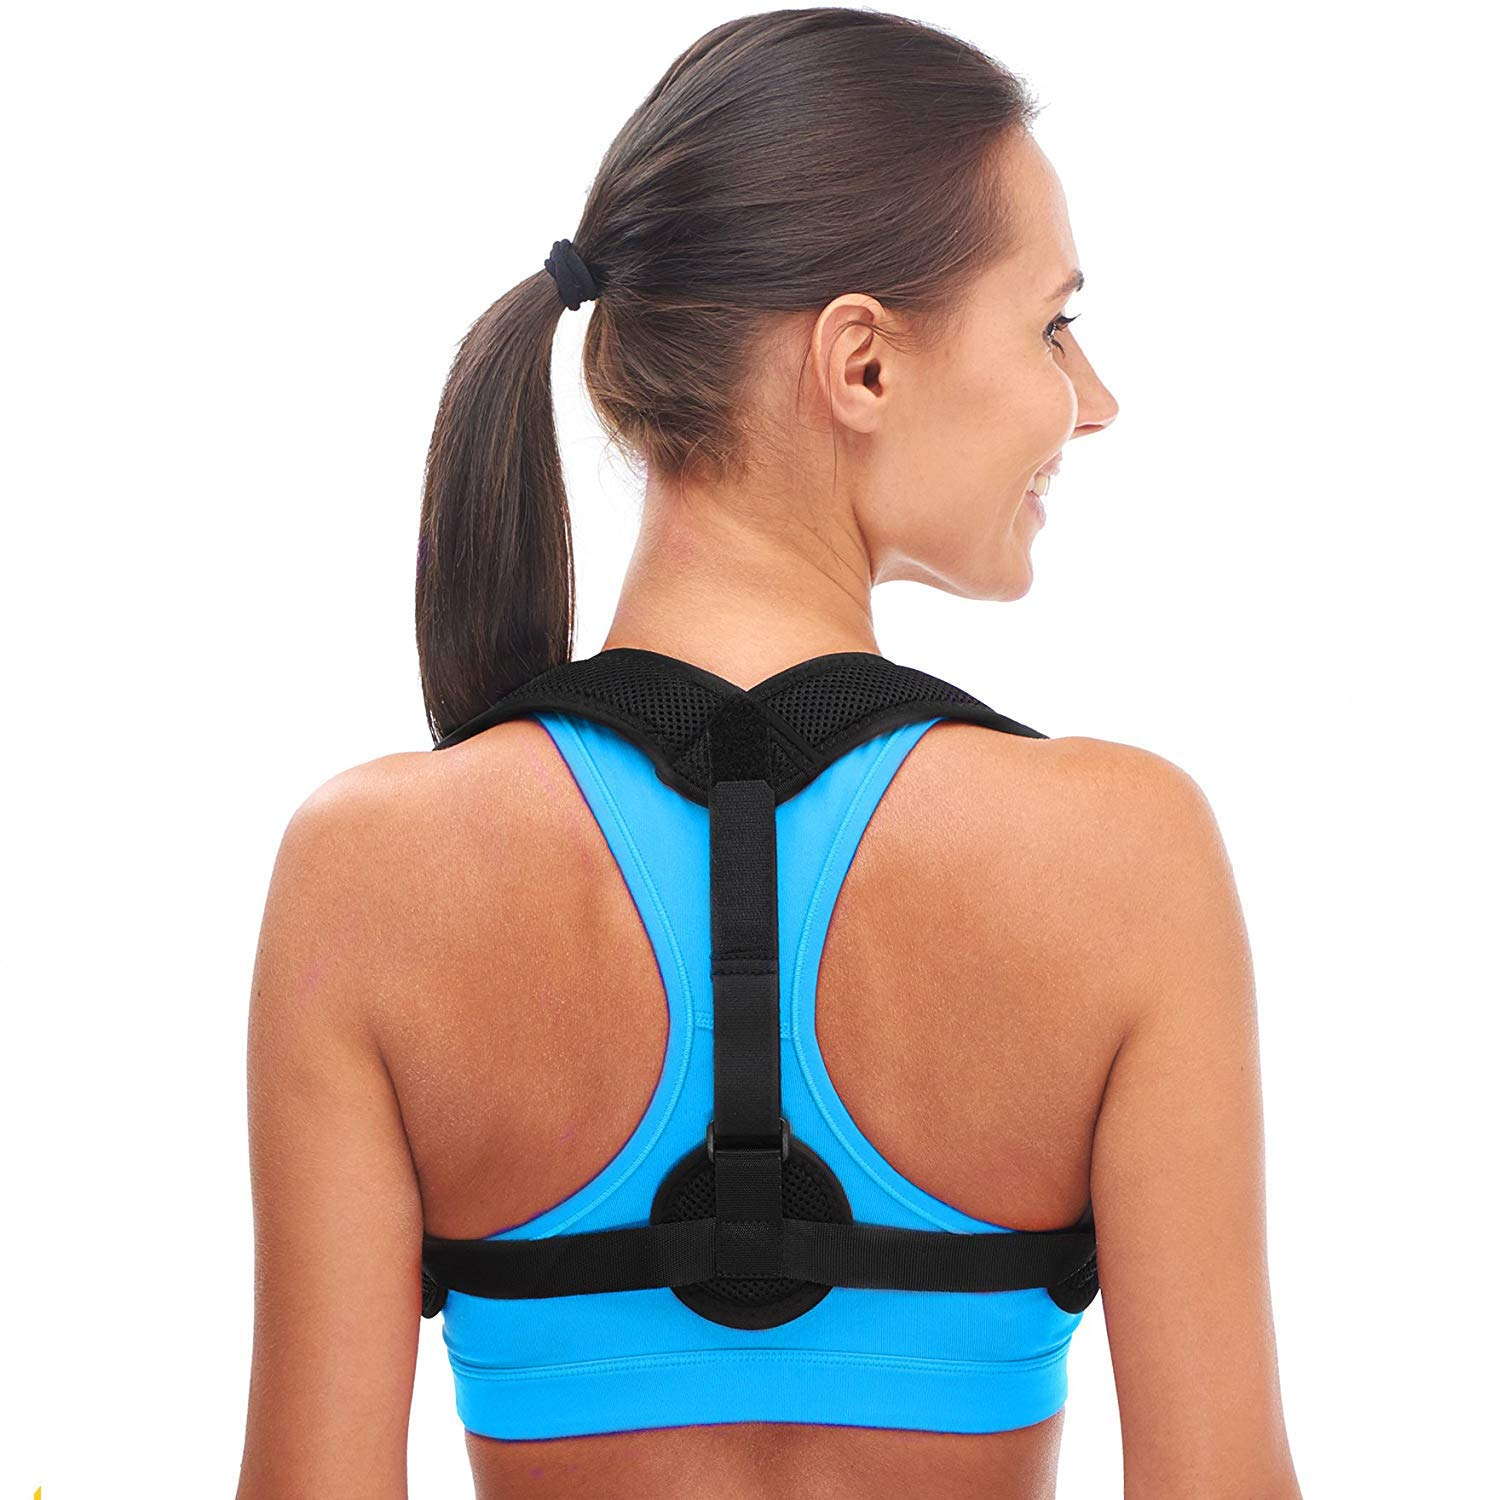 Andago Back Posture Corrector for Women & Men - Effective and Comfortable Posture Brace for Slouching & Hunching - Discreet Design - Clavicle Support